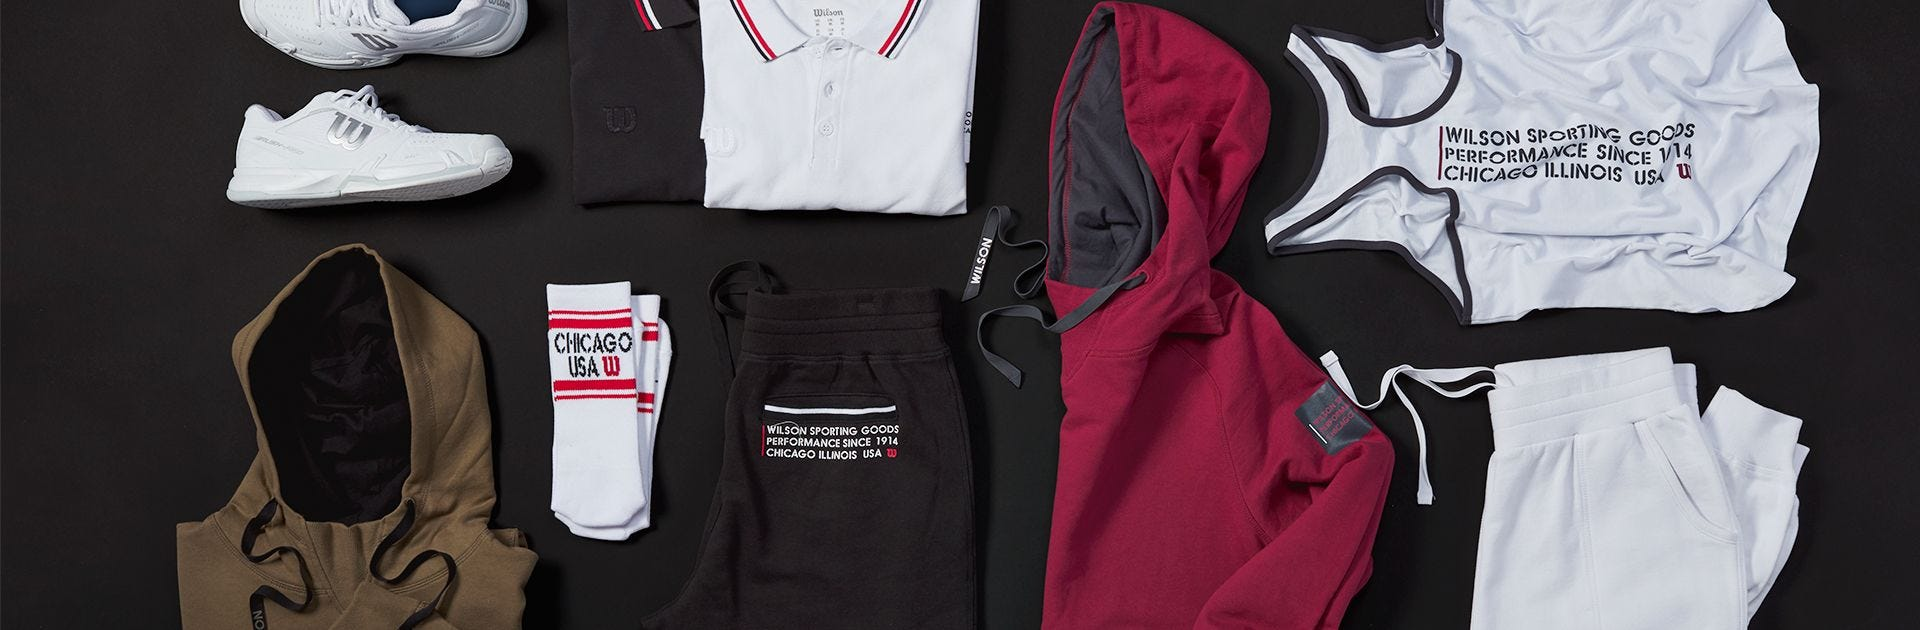 1914 Collection Apparel Lay Out